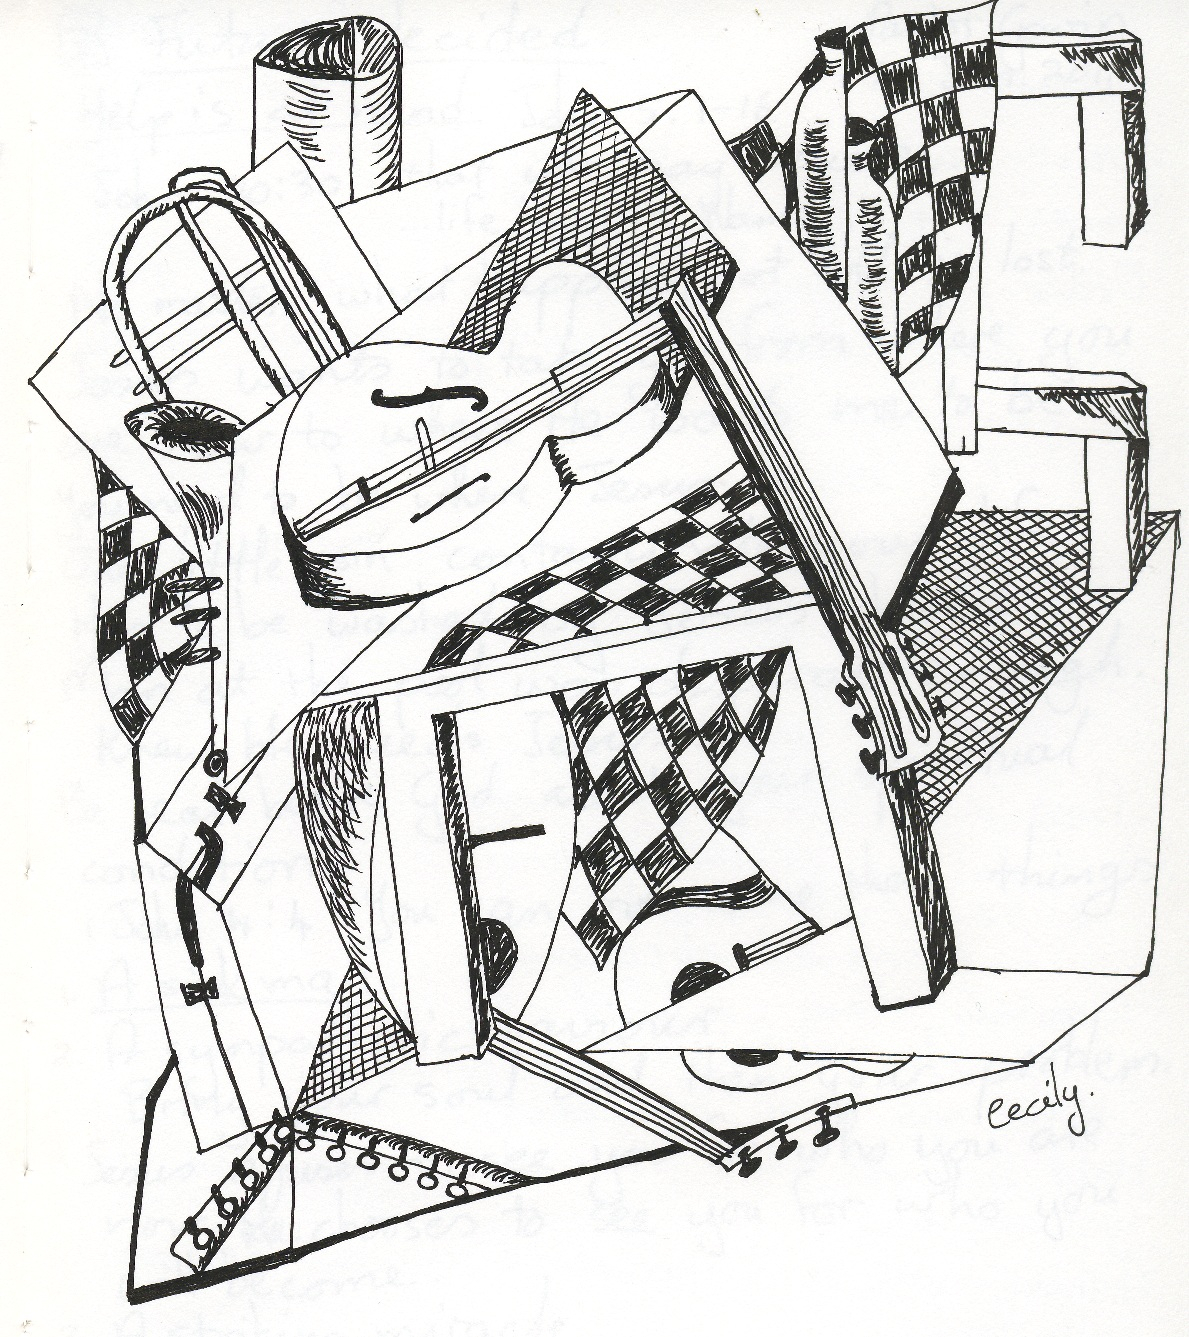 1189x1337 Pencil Sketch In Musical Instruments A Second Try At Cubism